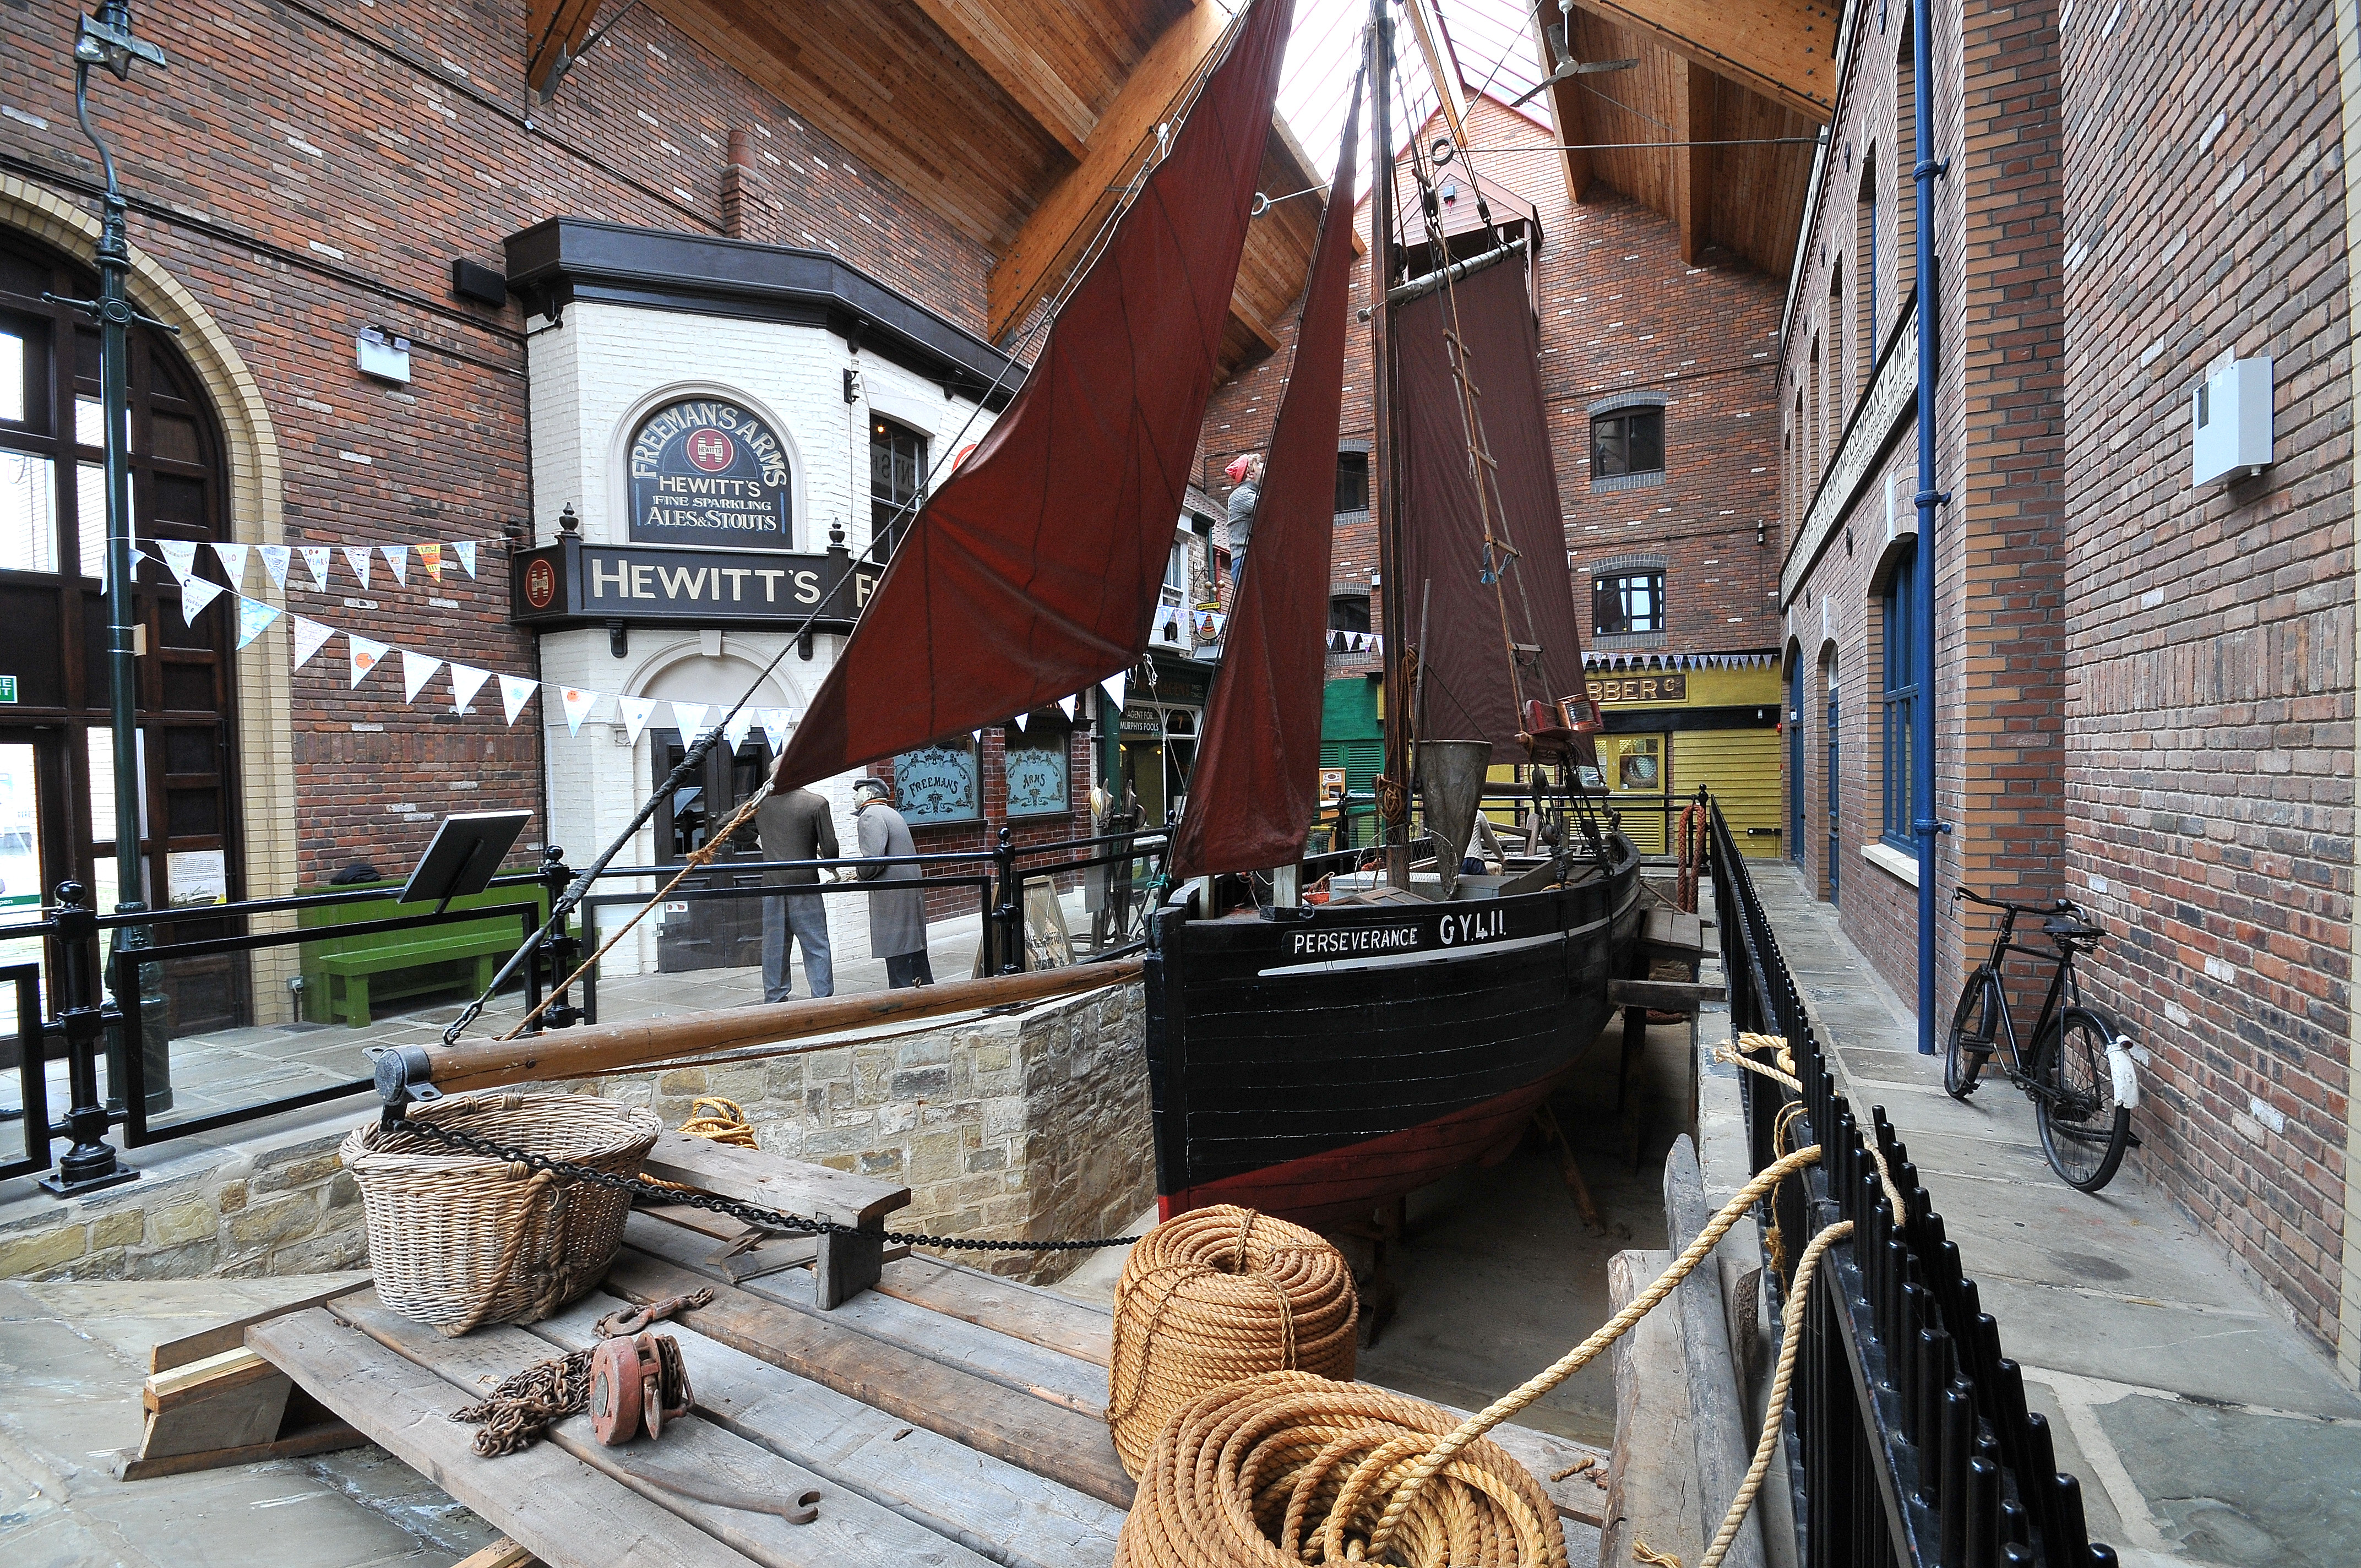 View a recreation of the street of Grimsby during the fishing hayday along with the perseverance boat.